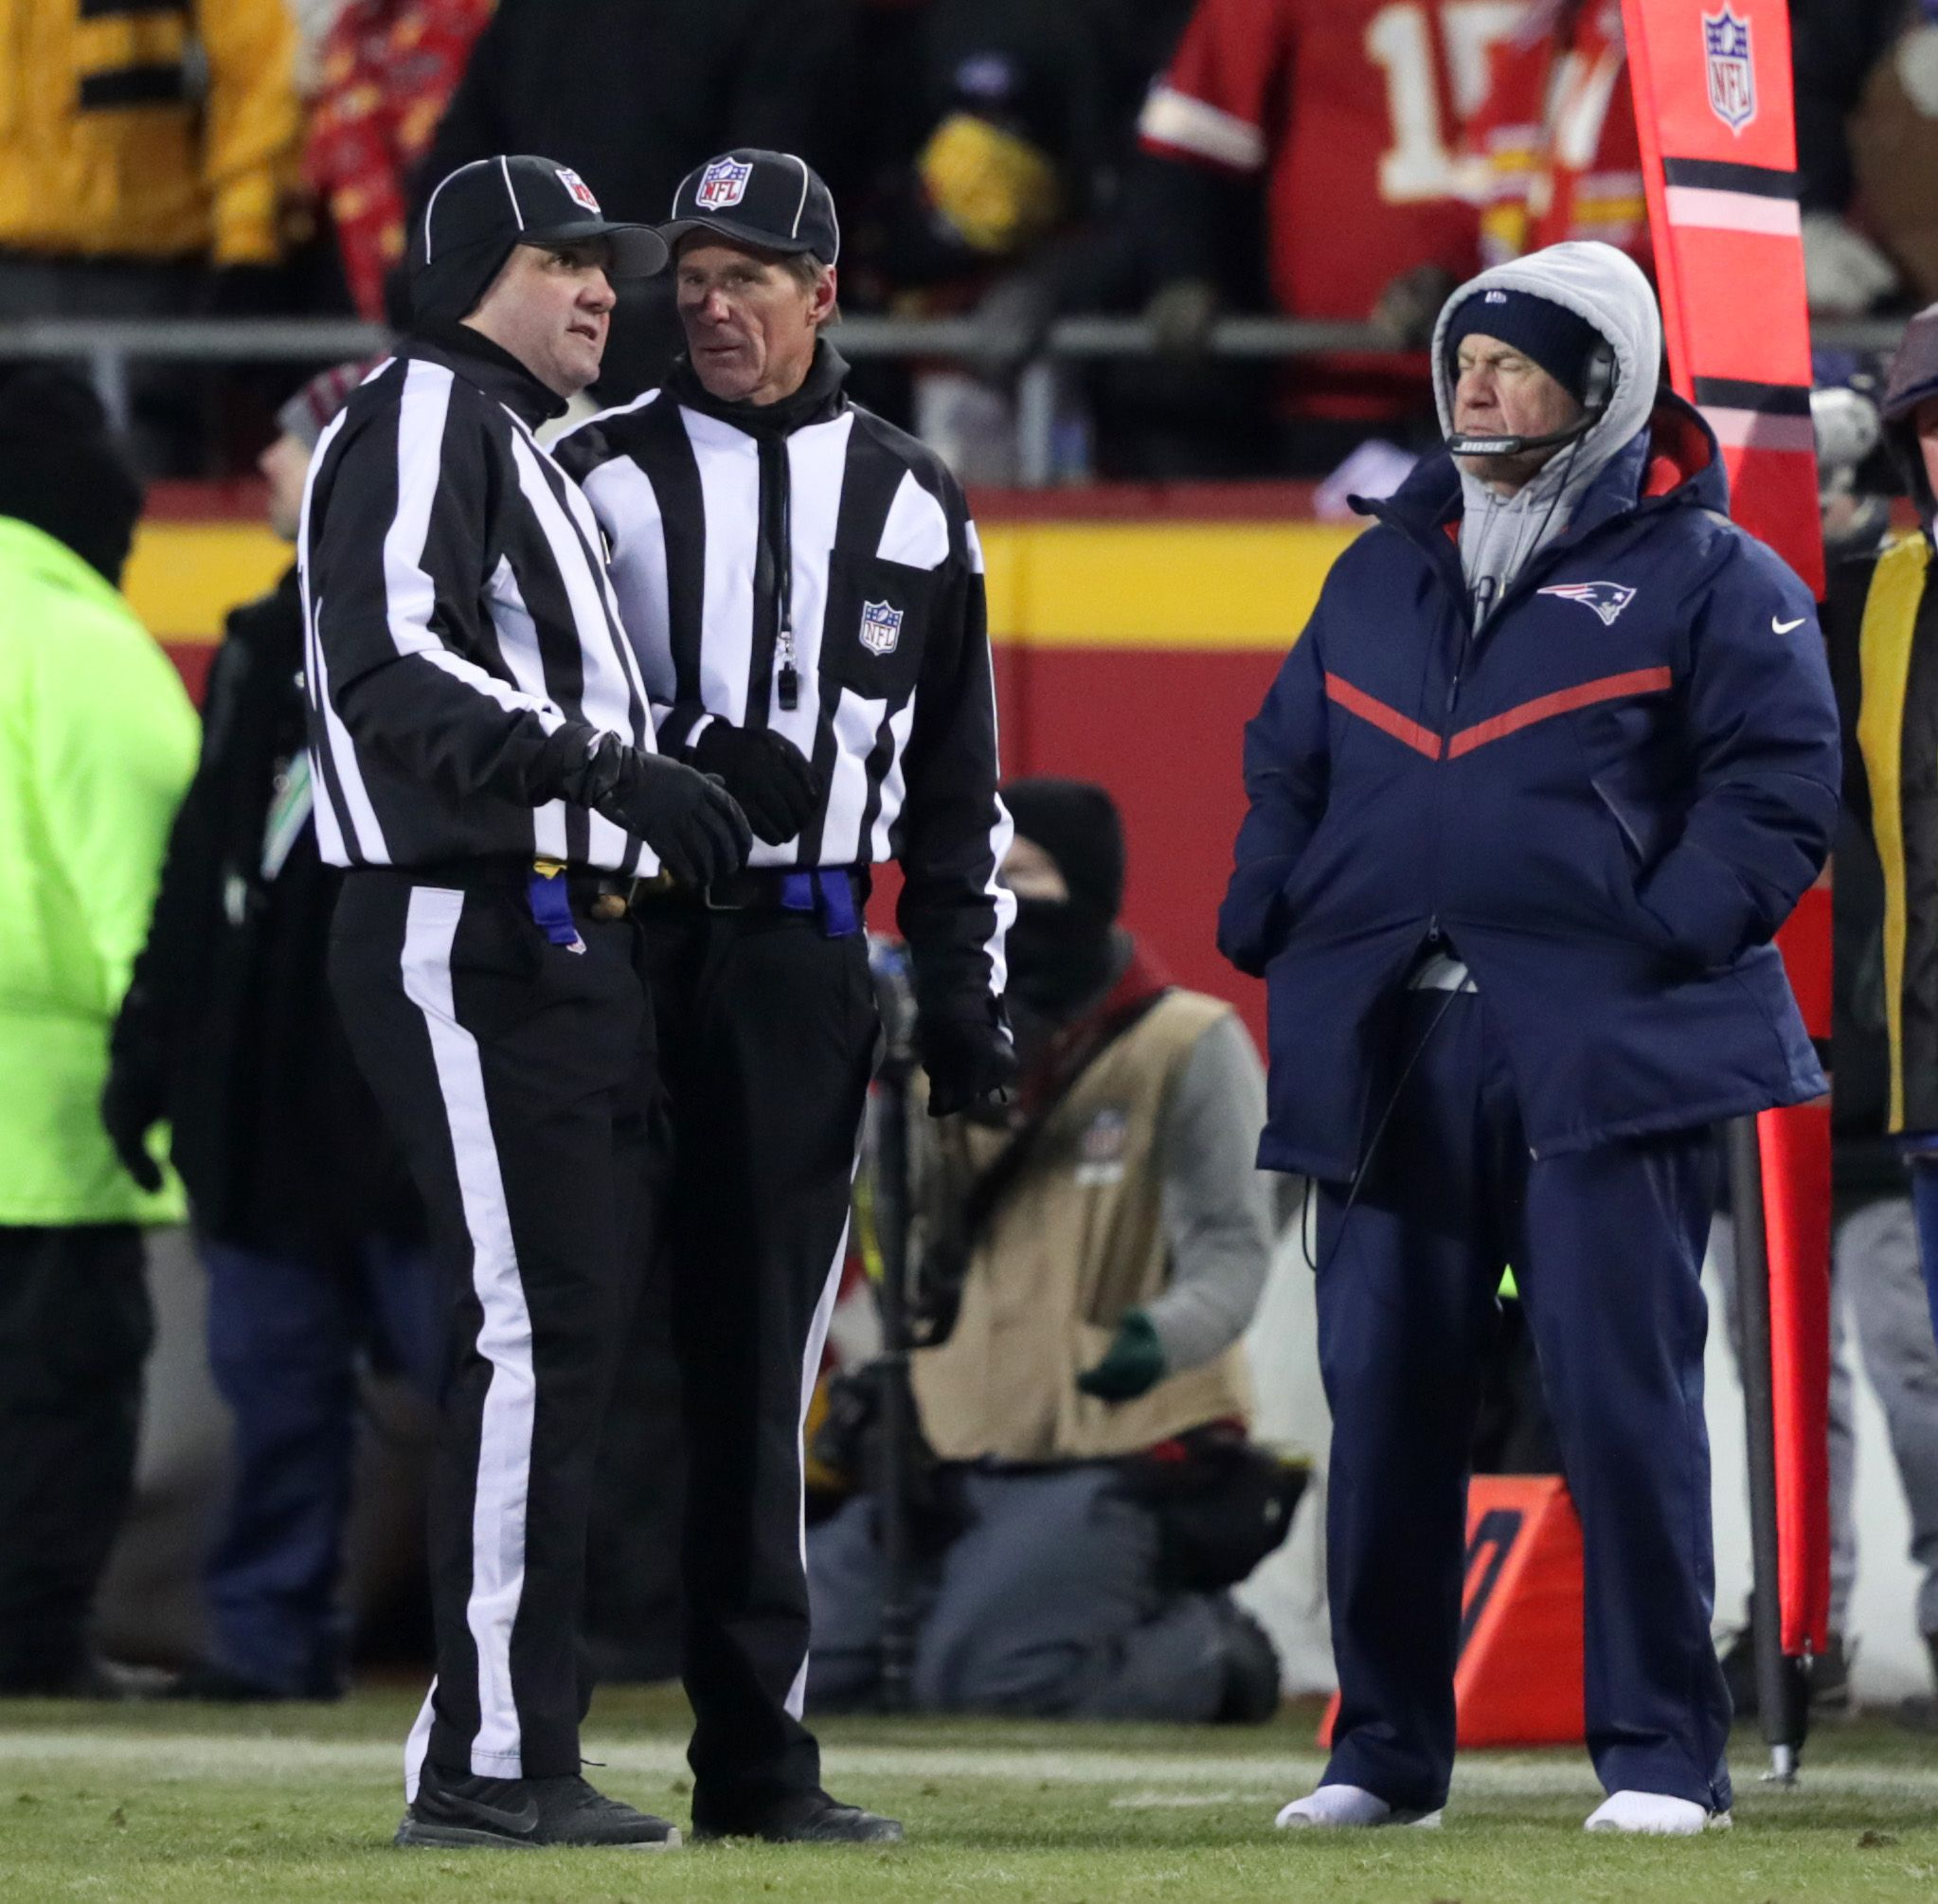 huge selection of b4fe3 aef41 Bill Belichick wasn't too happy with his tablet during the ...